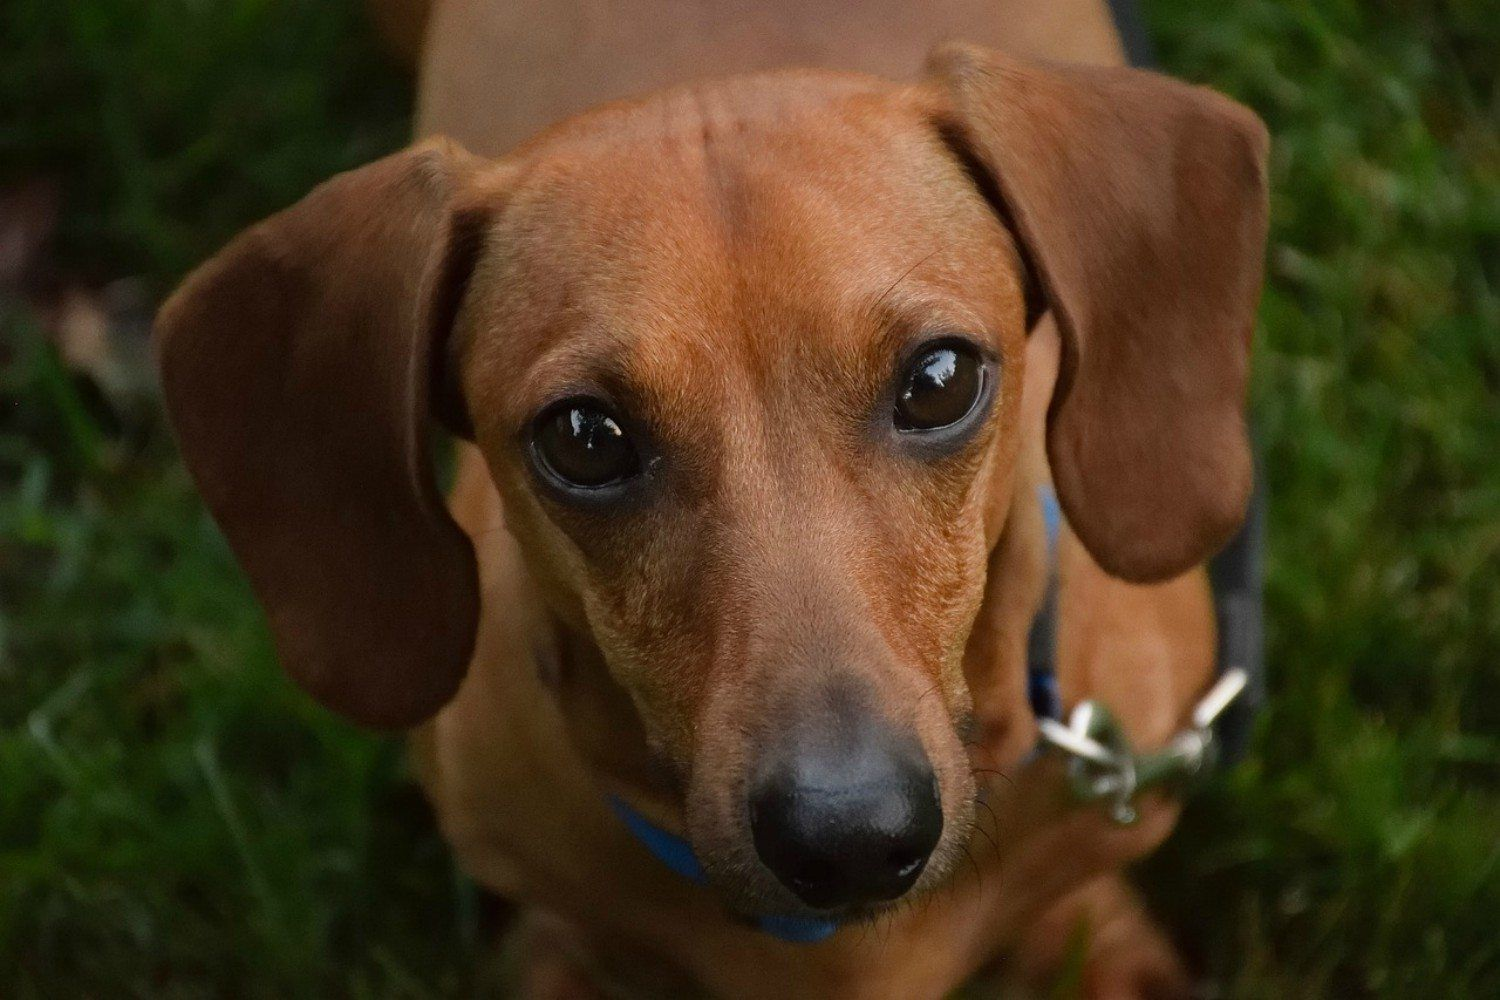 Attention Wiener Dog Fans There S Now A Museum Dedicated Entirely To Dachshunds Wiener Dog Cute Puppy Wallpaper Dachshund Dog